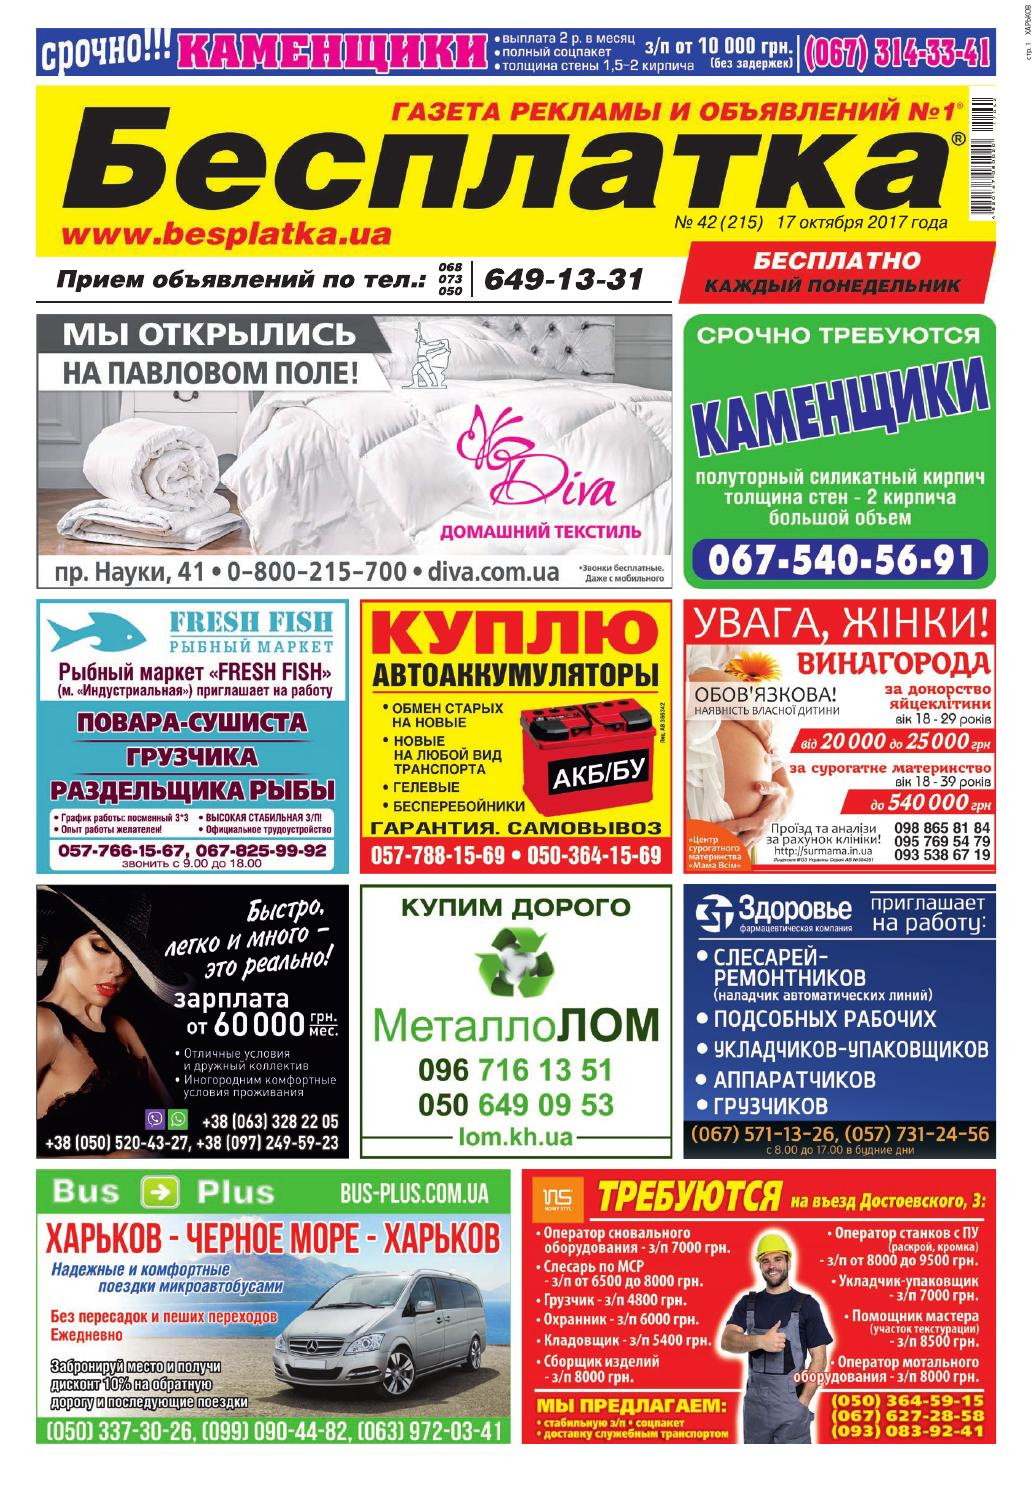 4869f2e6cfd6 Besplatka #42 Харьков by besplatka ukraine - issuu